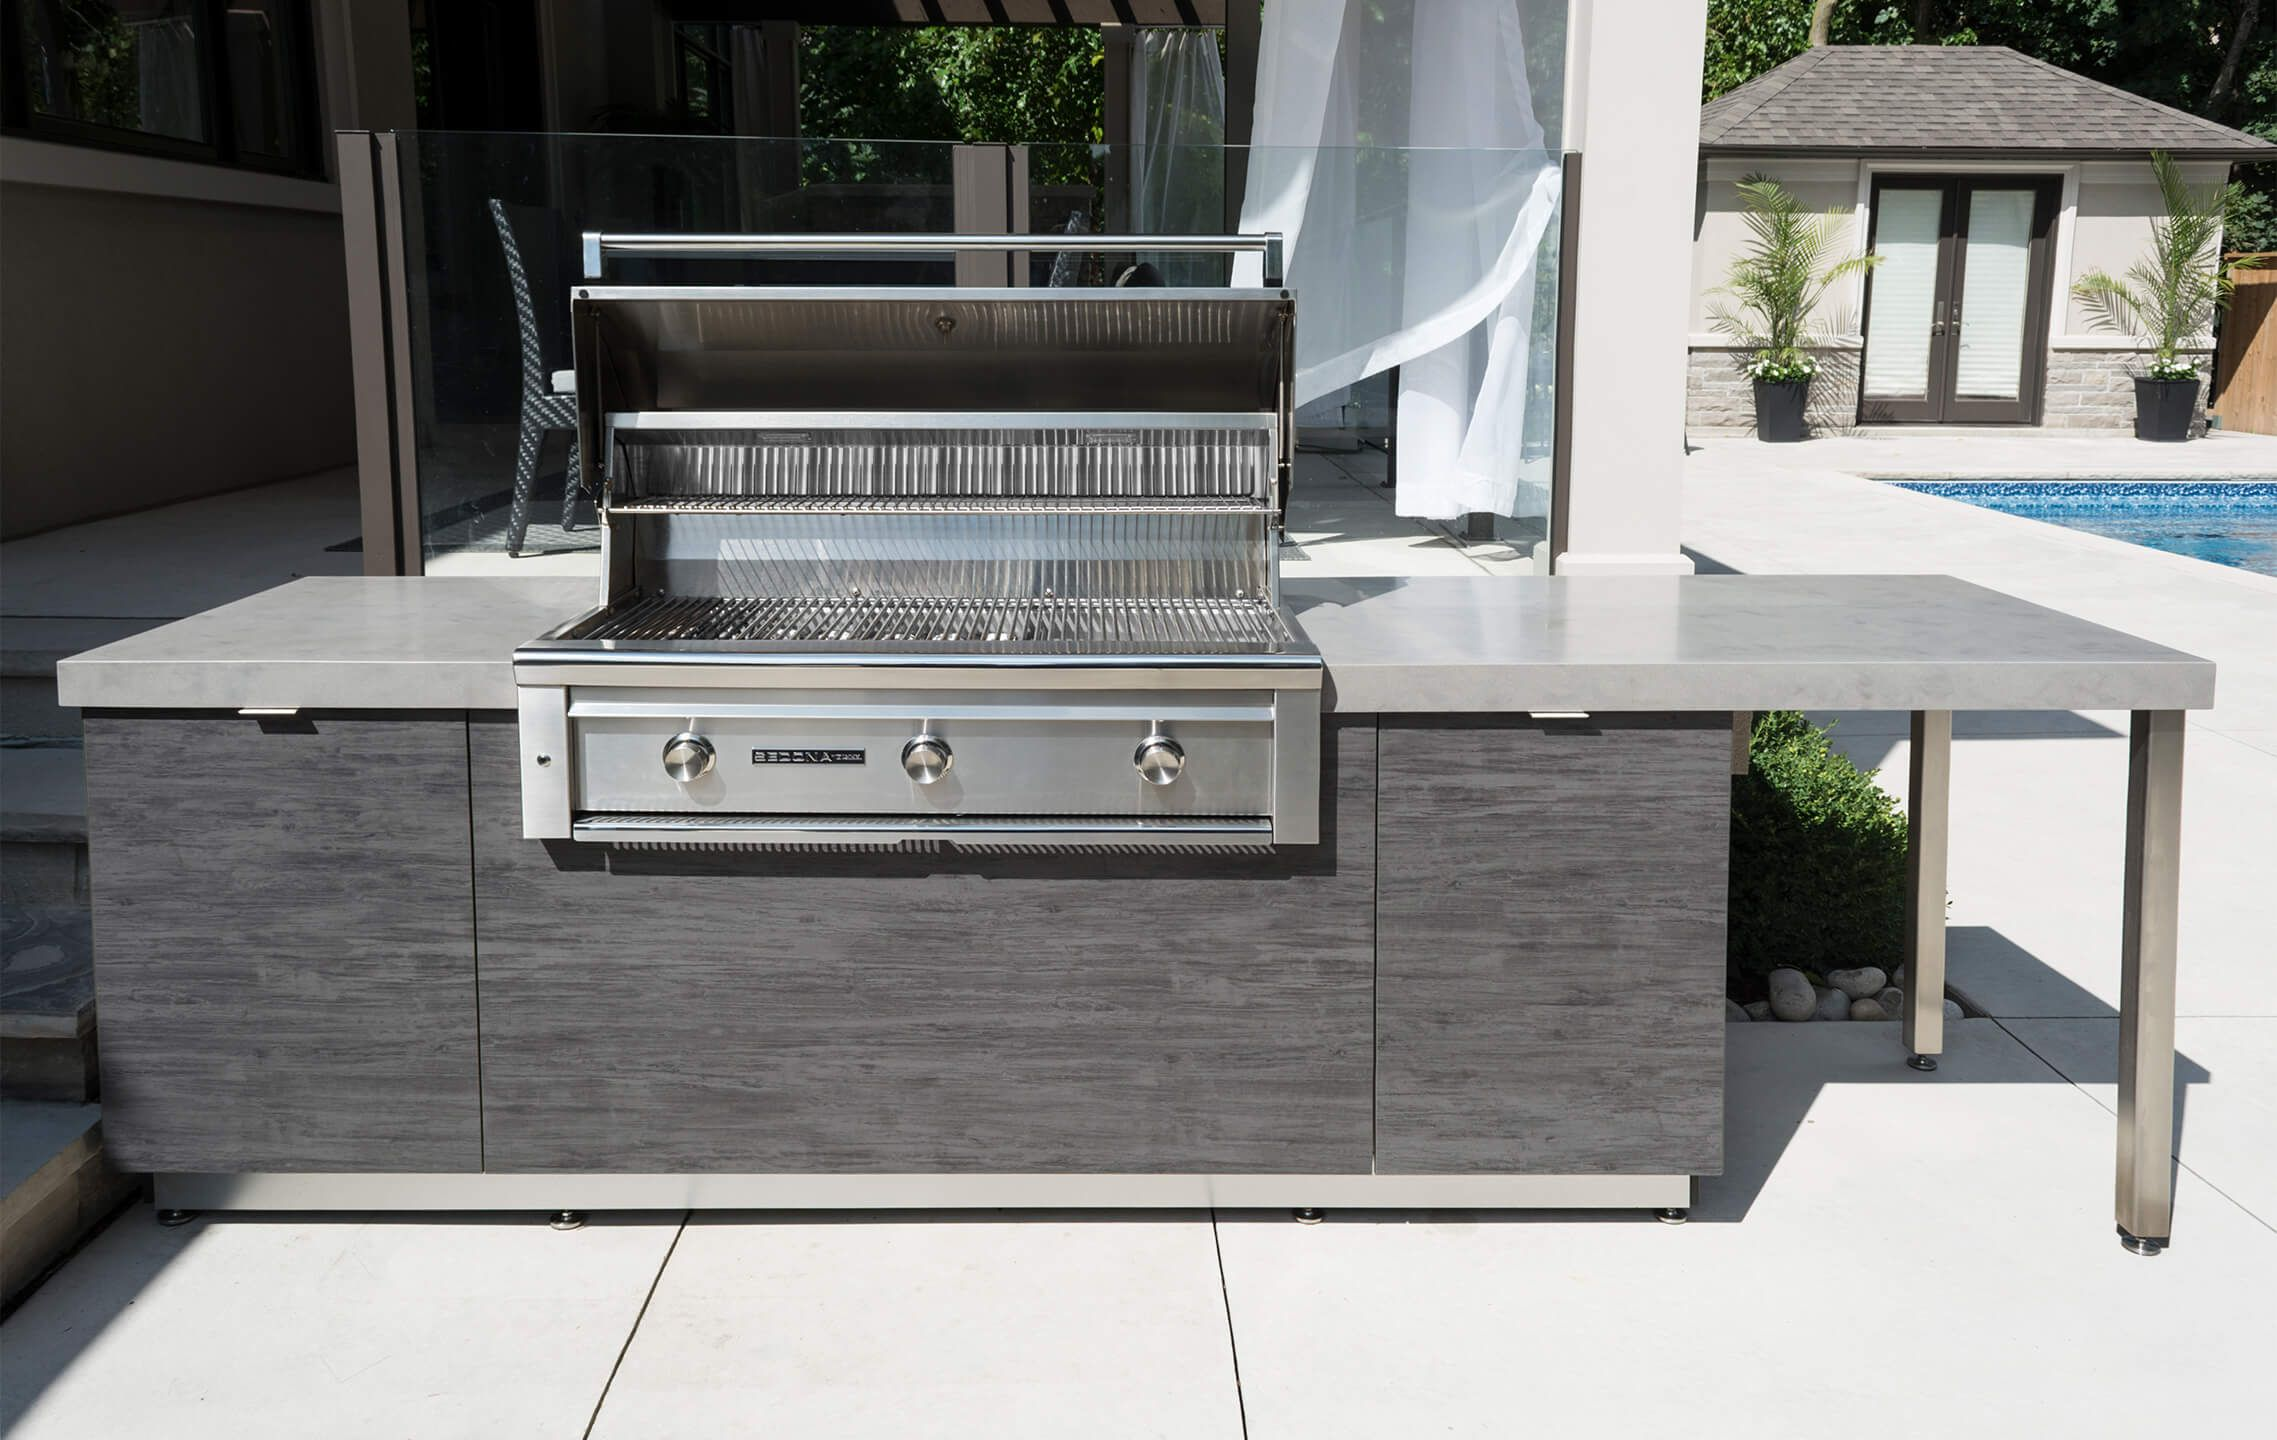 Lynx Sedona 42 Built In Gas Grill Outdoor Kitchen Equipment